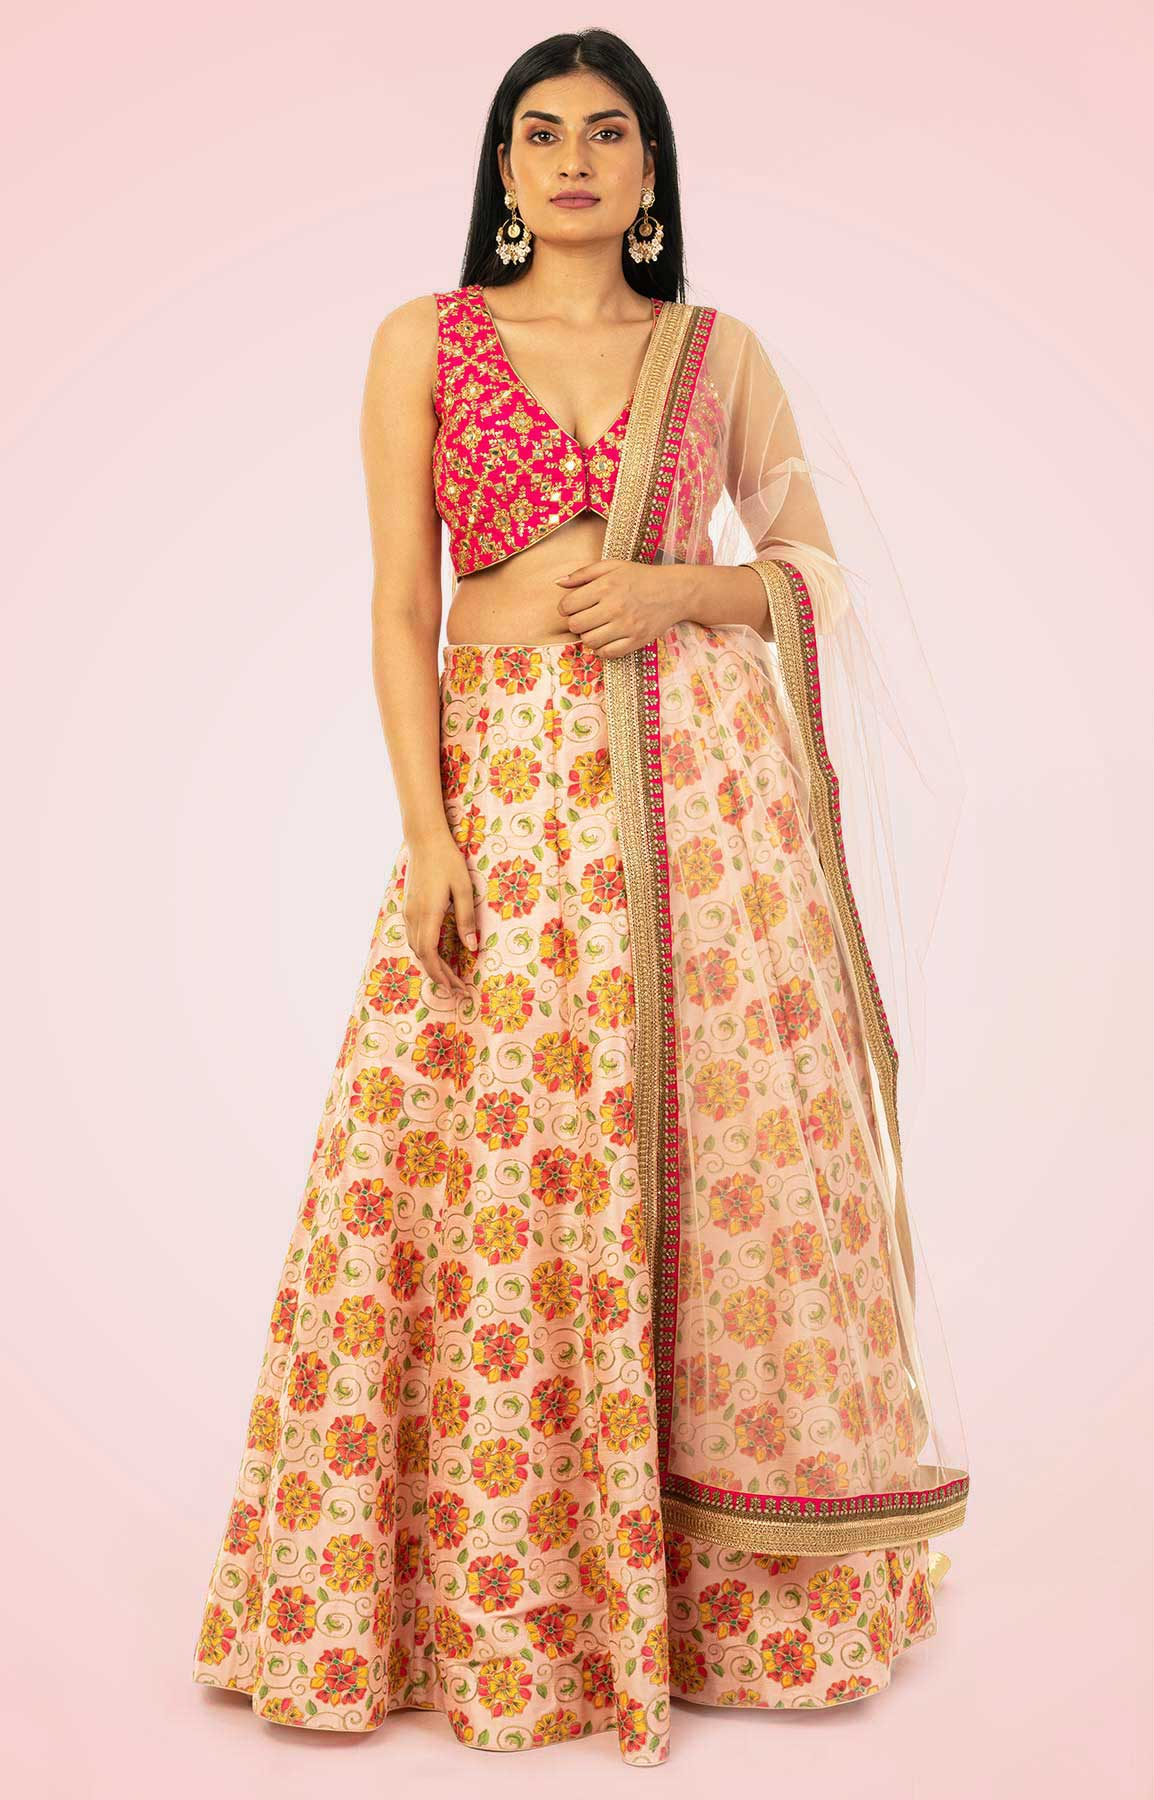 Floral Print Pink Lehenga With Mirror Work Blouse And Beige Colour Dupatta – Viraaya By Ushnakmals